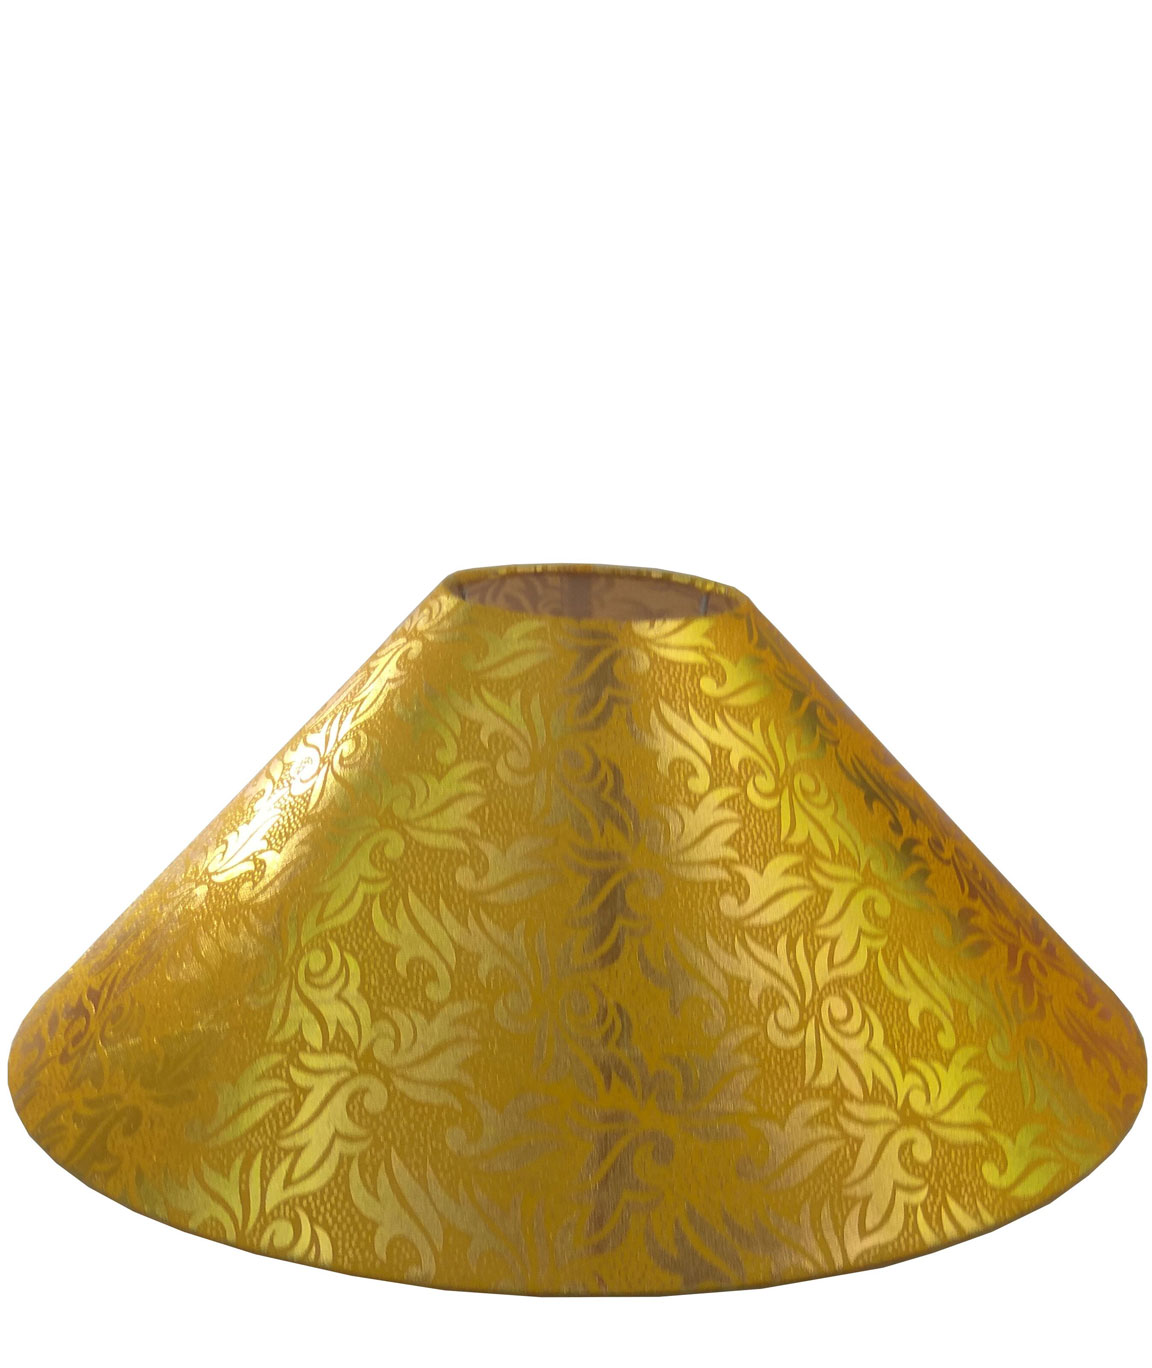 RDC 13 Inches Round Yellow with Golden Designer Lamp Shade for Table Lamp